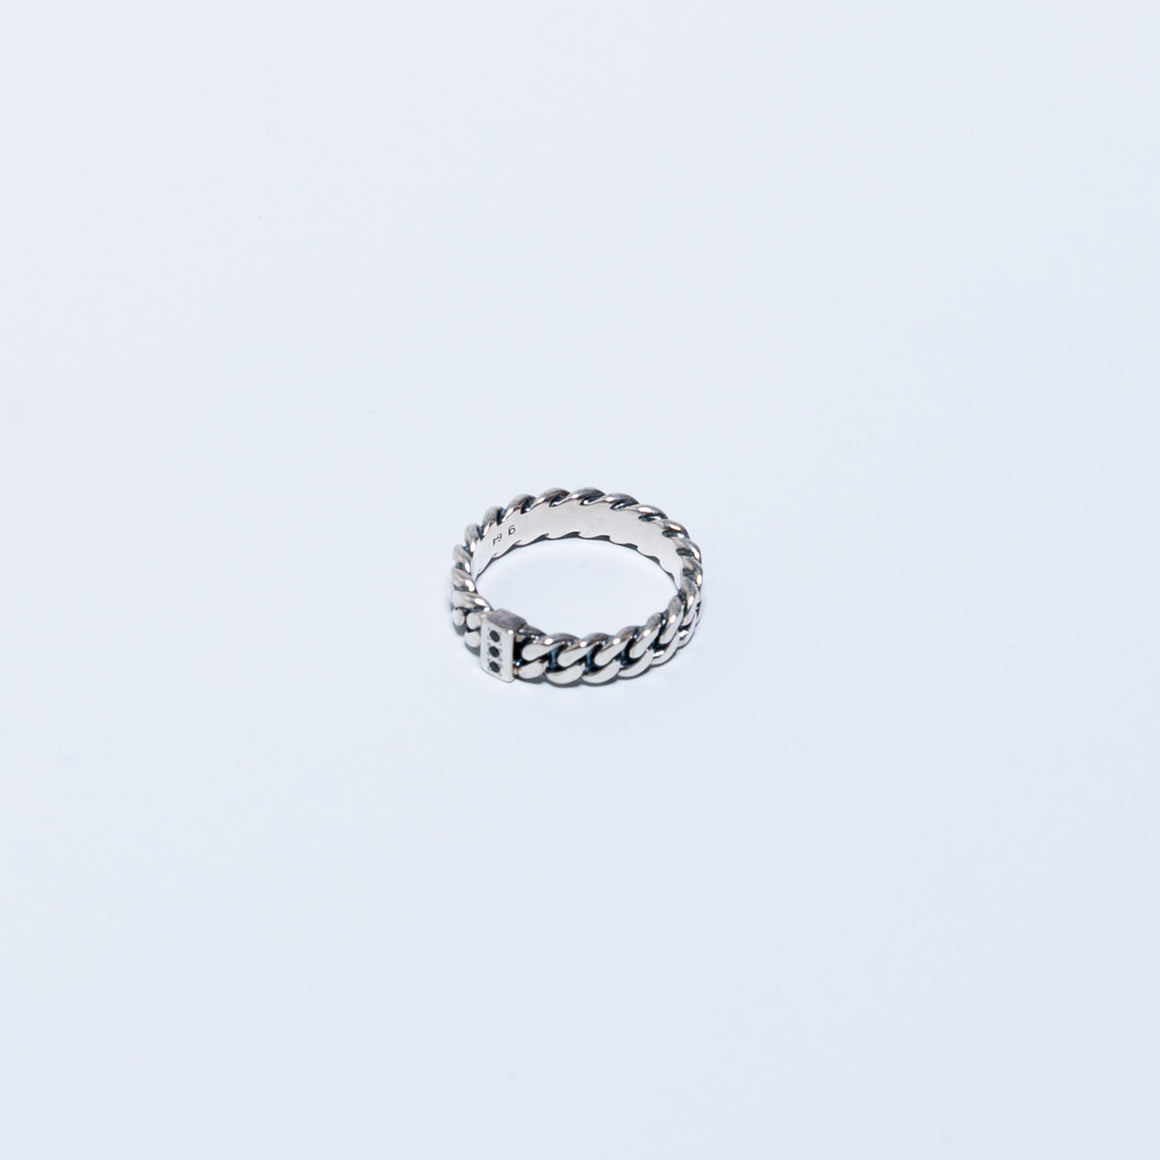 Chain Ring Slim Spinel - 925 Sterling Silver - Up There